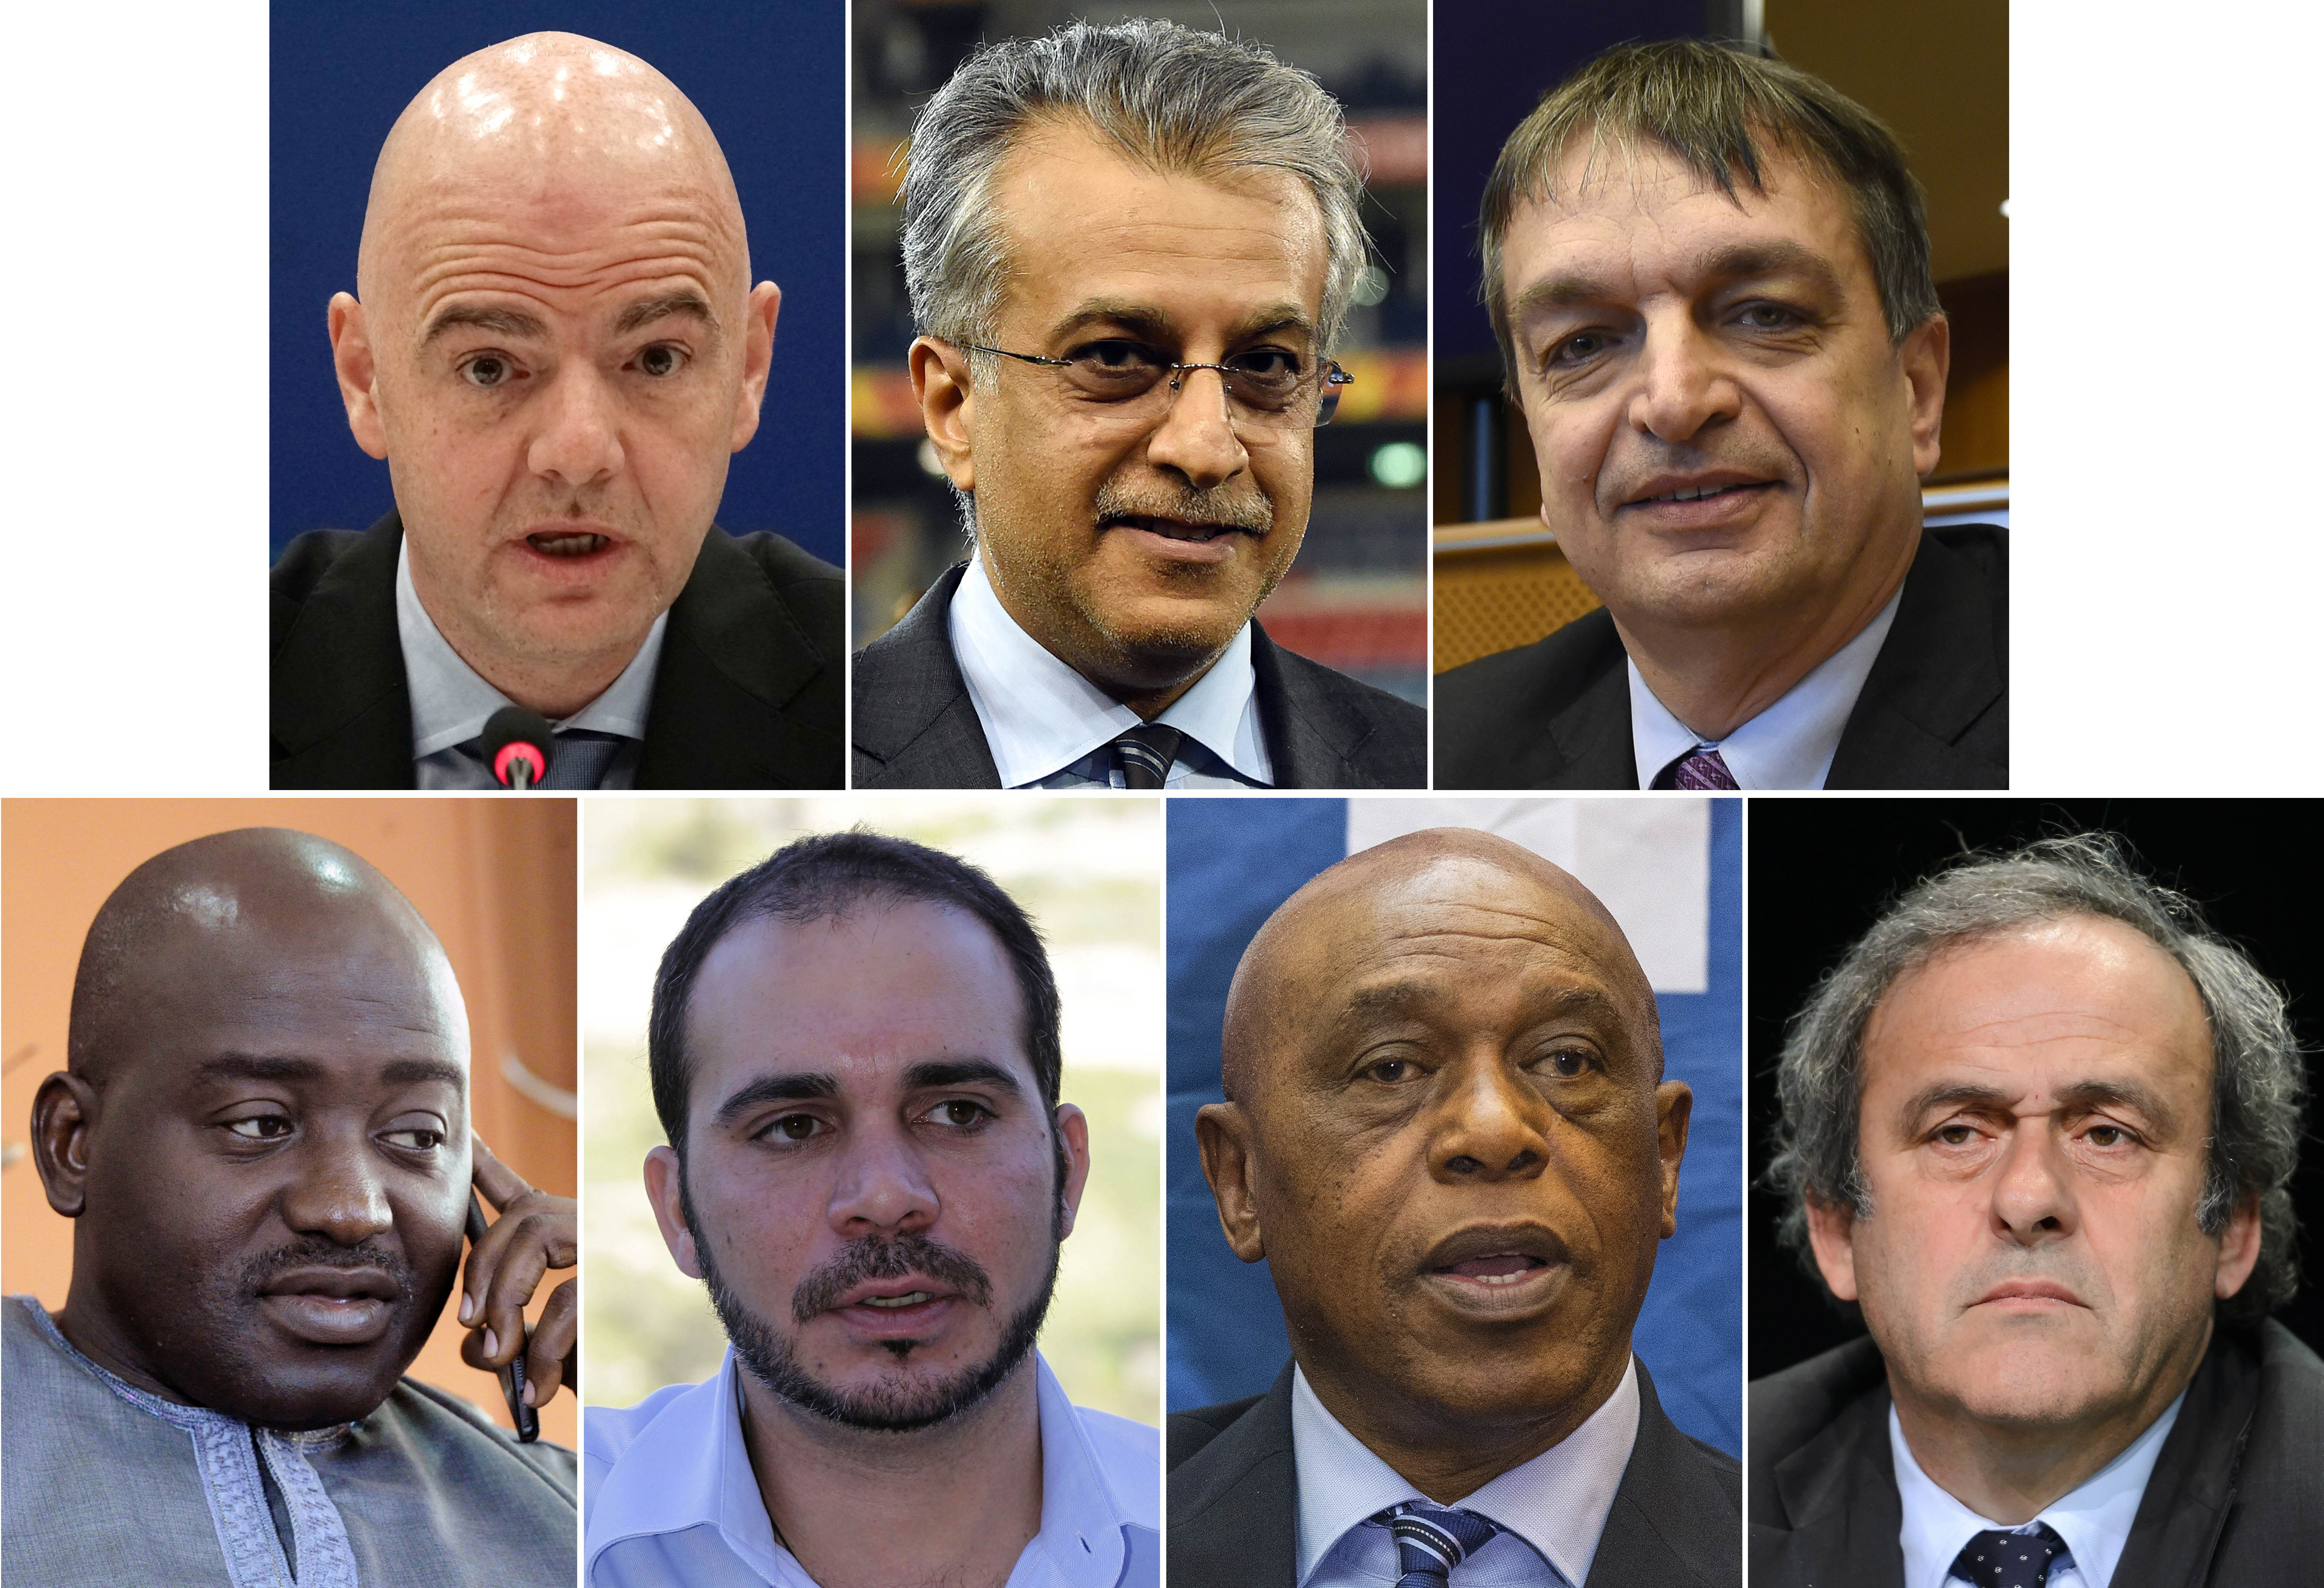 (COMBO) A combination of file pictures made on October 28, 2015 shows (from top L) UEFA secretary general Gianni Infantino on March 23, 2015, AFC President Shaikh Salman bin Ebrahim Al Khalifa on January 30, 2015, Former FIFA deputy general secretary Jerome Champagne on January 21, 2015, Liberia FA chairman Musa Bility on June 19, 2015, FIFA vice president for Asia Prince Ali bin al-Hussein of Jordan on April 28, 2012, Chairman of the FIFA monitoring committee for Israel and Palestine, Tokyo Sexwale, on October 2, 2015 and UEFA President Michel Platini on May 28, 2015. Prince Ali Bin Al Hussein, Michel Platini, Jerome Champagne, David Nakhid, Tokyo Sexwale, Shaikh Salman Bin Brahim Al Khalifa, Gianni Infantino and Musa Bility are official candidates for the FIFA presidency as the deadline for submitting the formal bids is Midnight UTC on October 26.  AFP PHOTO / JOE KLAMAR / SAEED KHAN / JOHN THYS / ZOOM DOSSO / KHALIL MAZRAAWI / JACK GUEZ / FABRICE COFFRINI